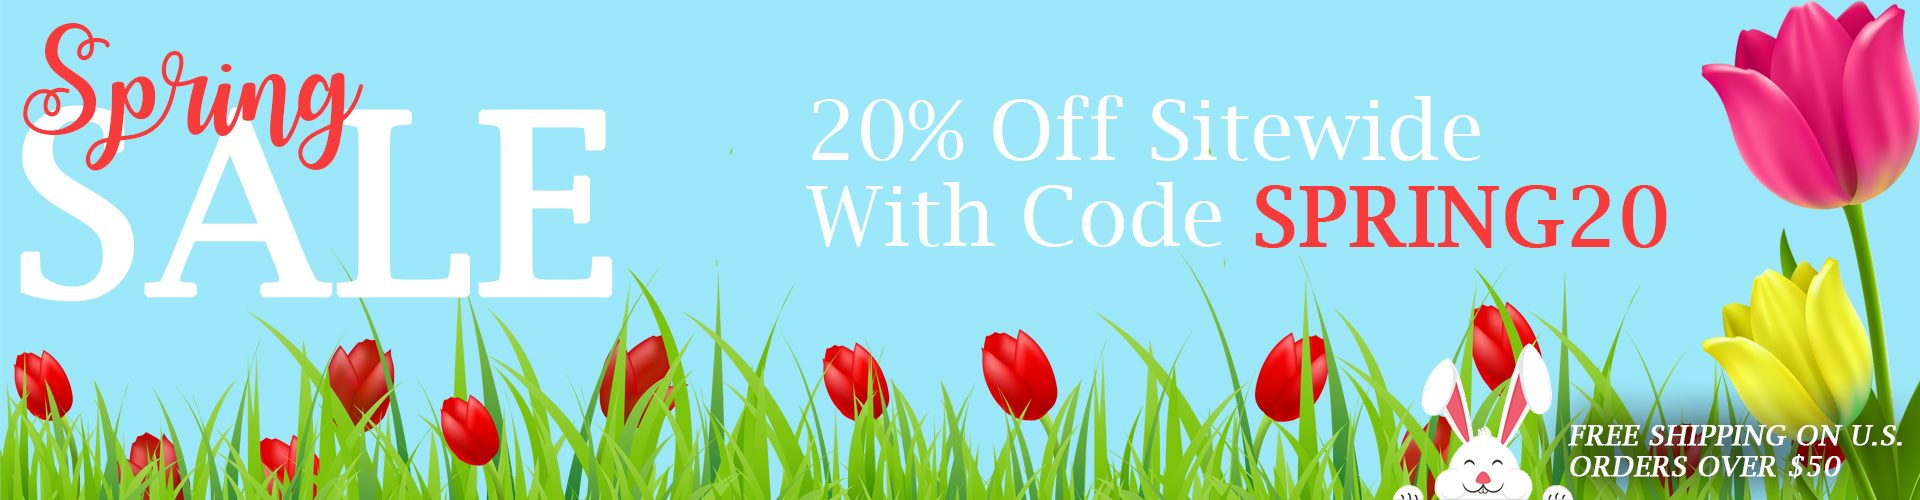 Spring sale! Save 20% off sitewide with code: SPRING20. Free shipping on U.S. orders over $50.00.